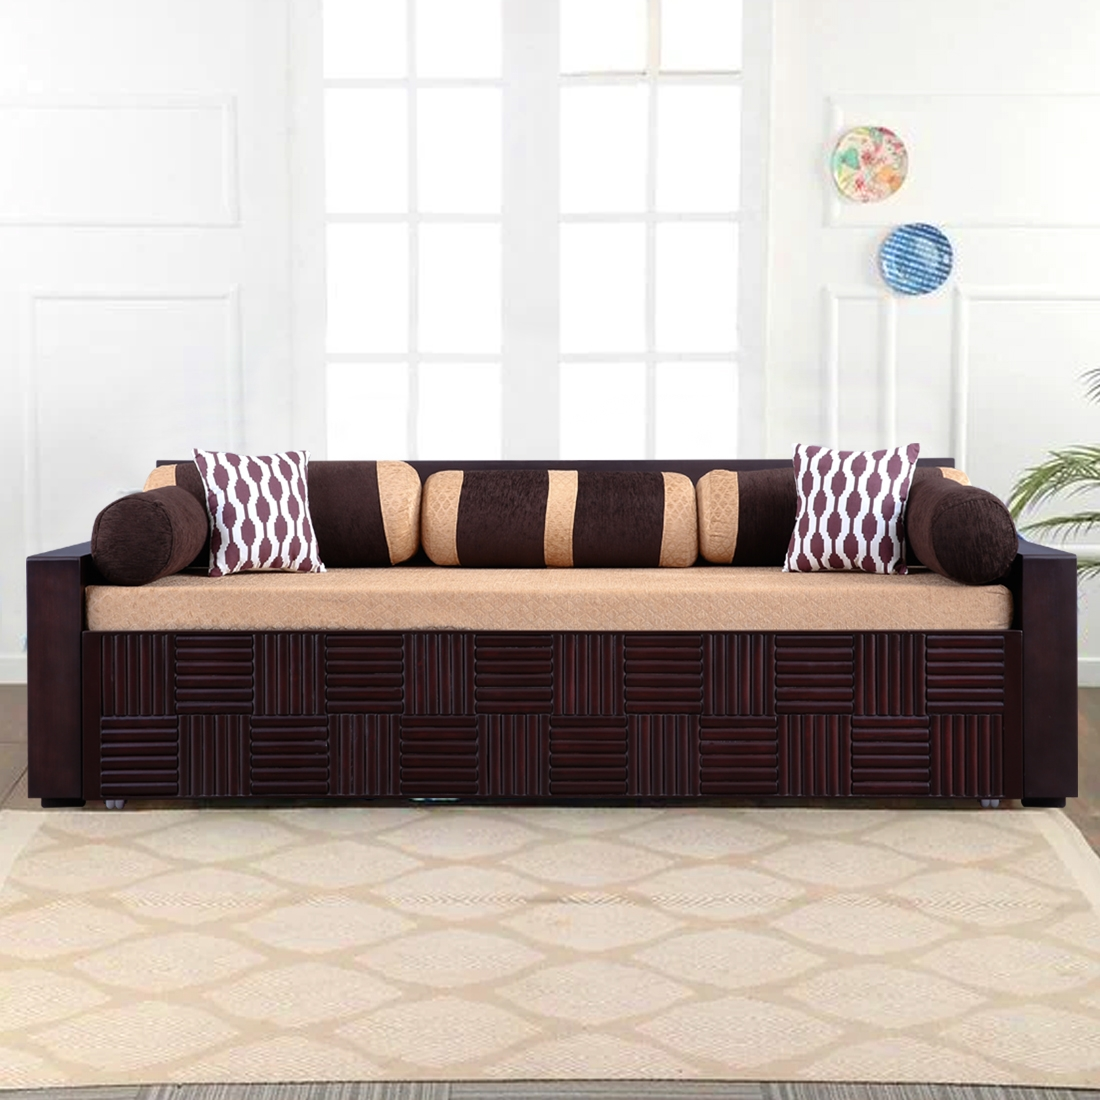 Shine Fabric Sofa Bed In Brown, Brown Cloth Sofa Bed